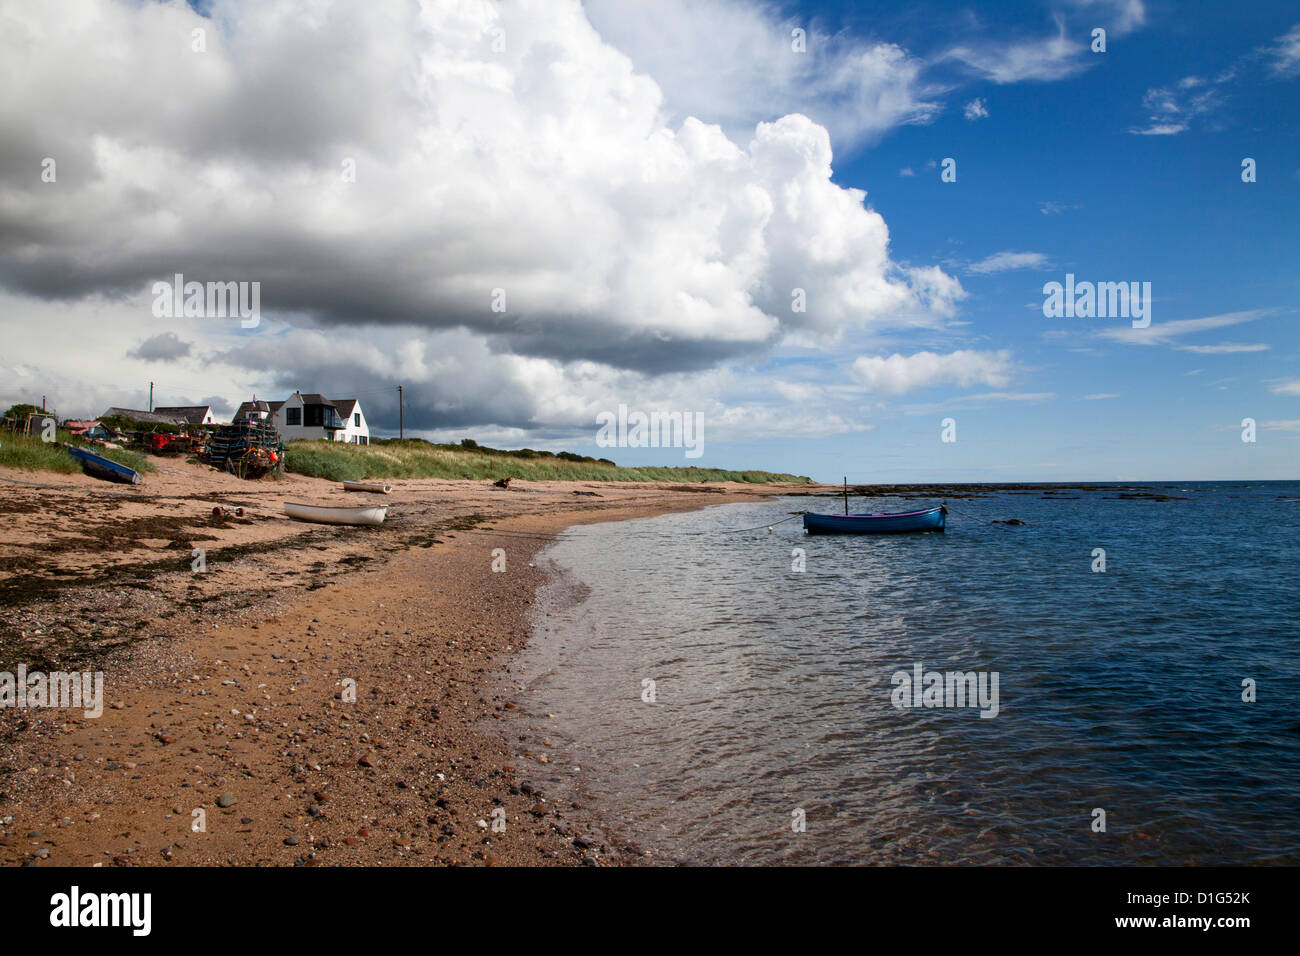 Fishing boats on the beach at Carnoustie, Angus, Scotland, United Kingdom, Europe - Stock Image